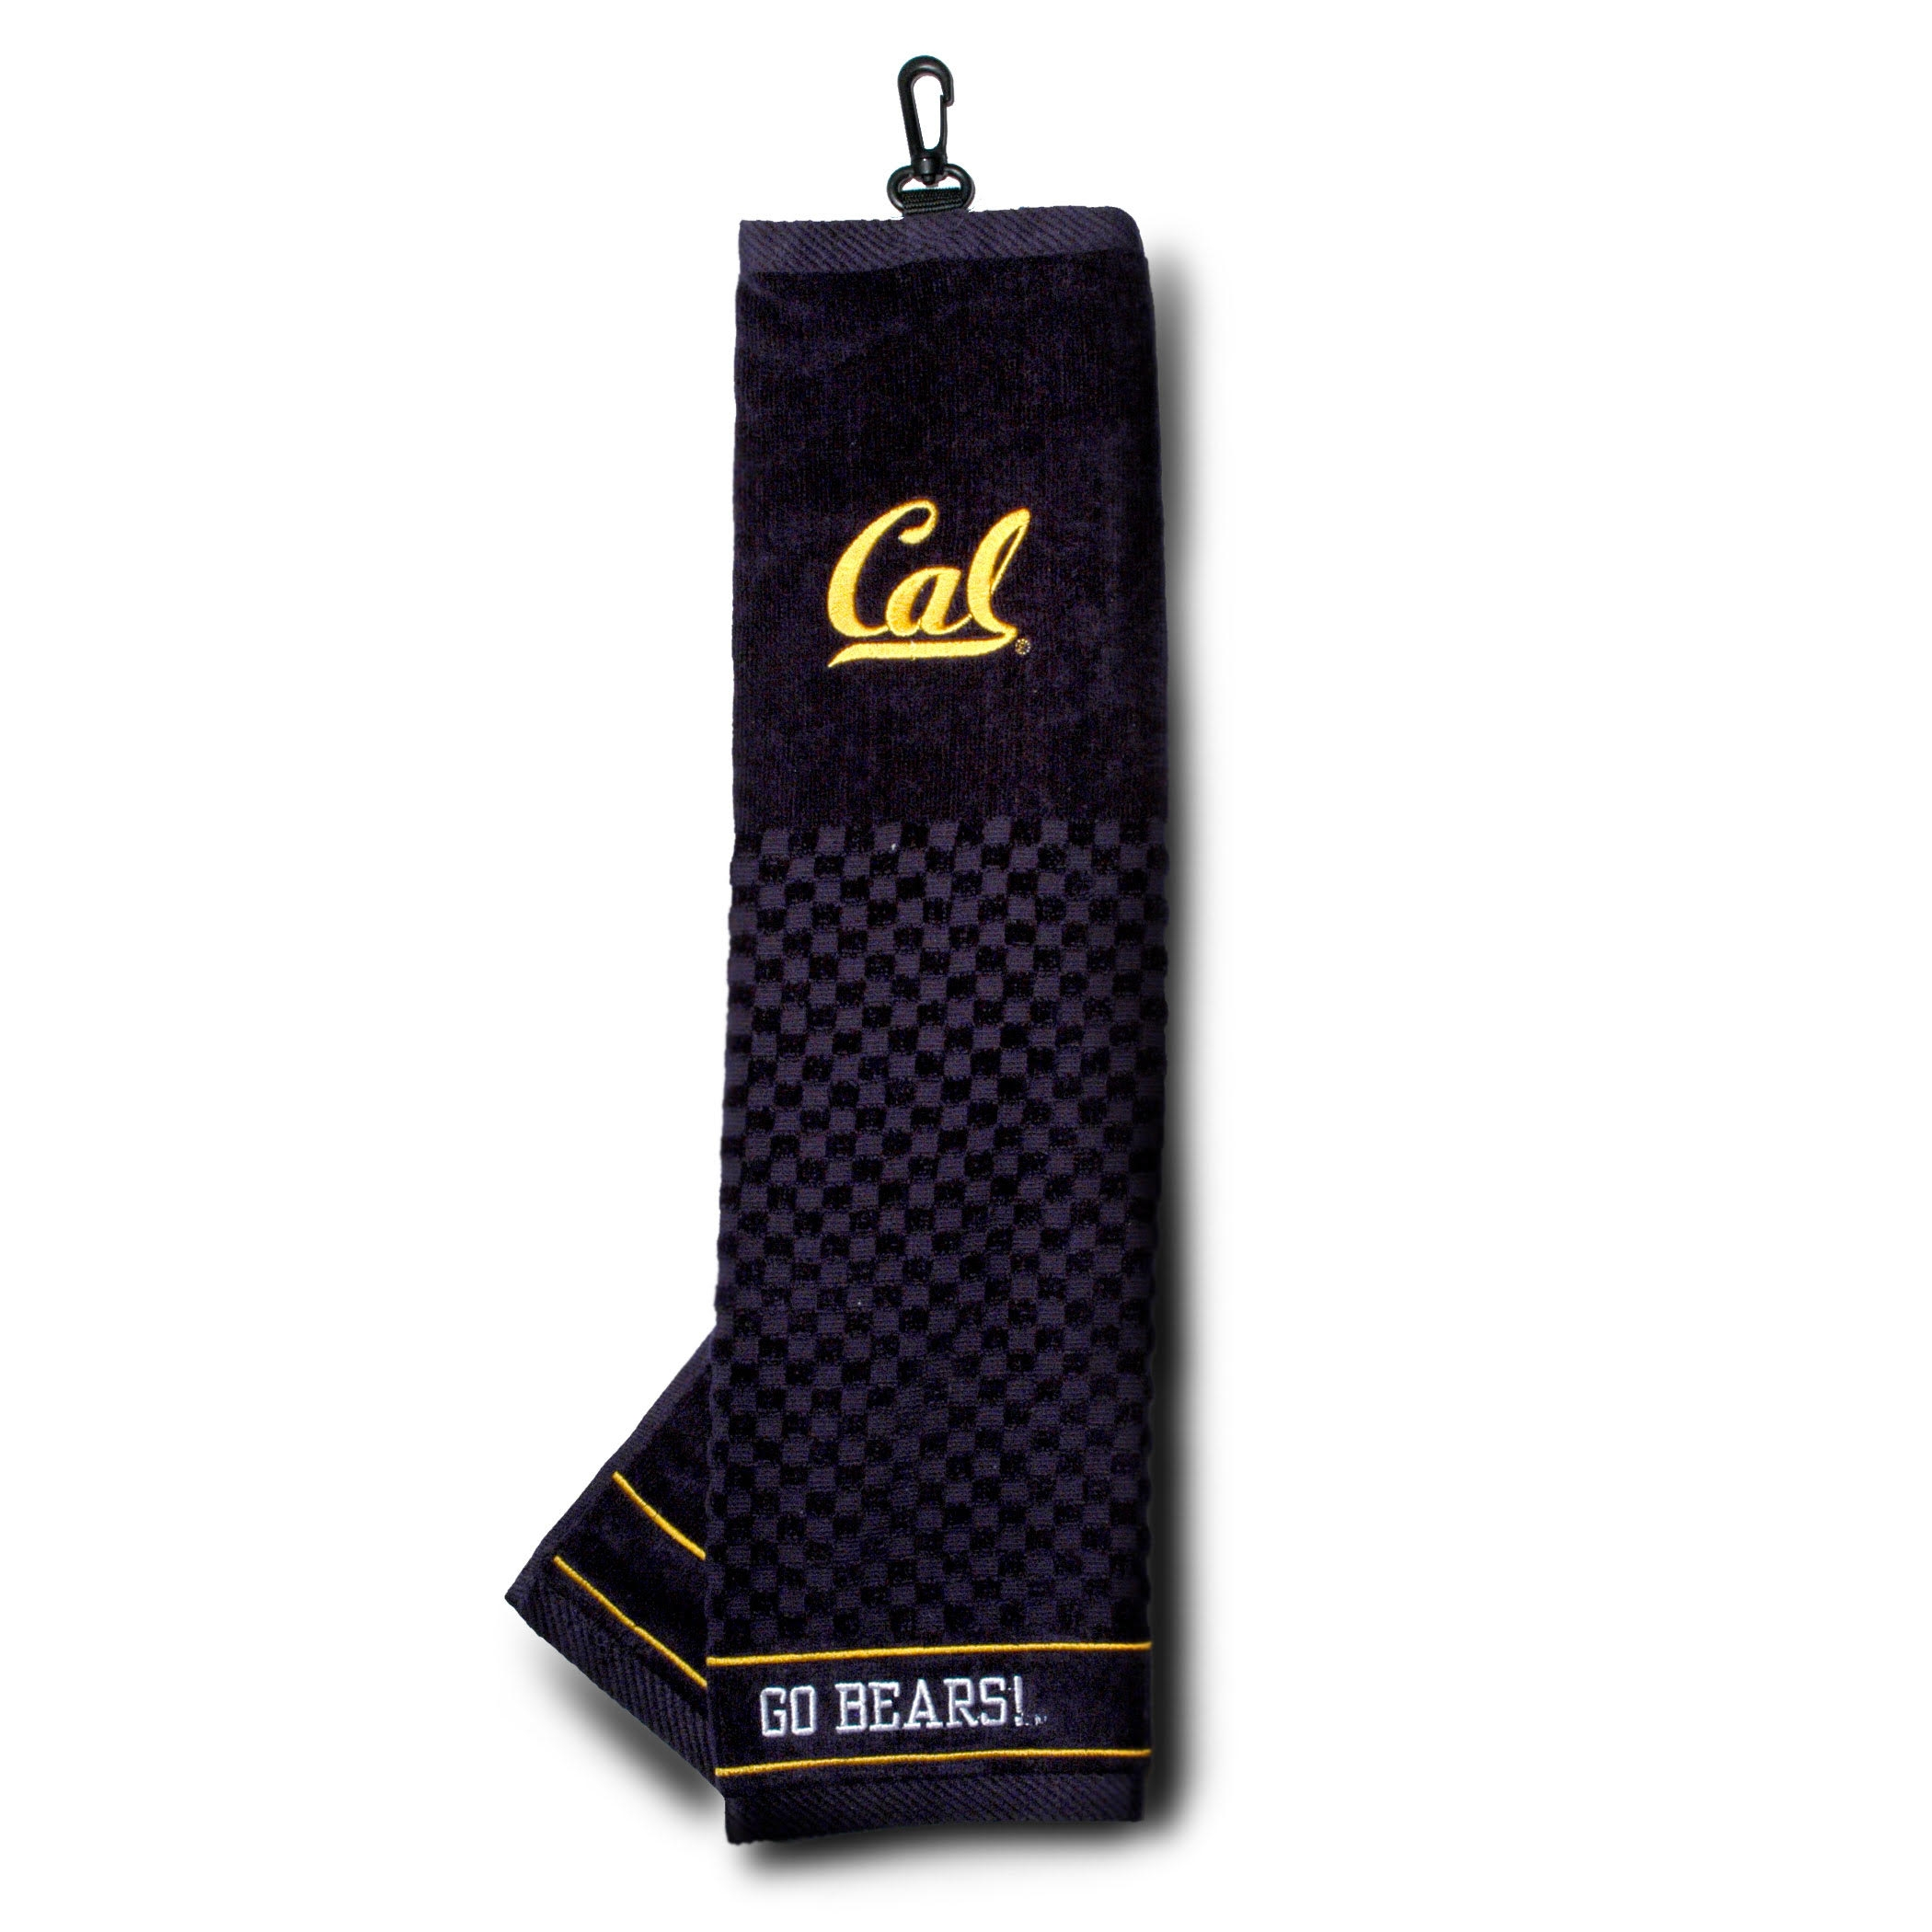 Cal Bears Embroidered Towel - Tri - Folded by Team Golf